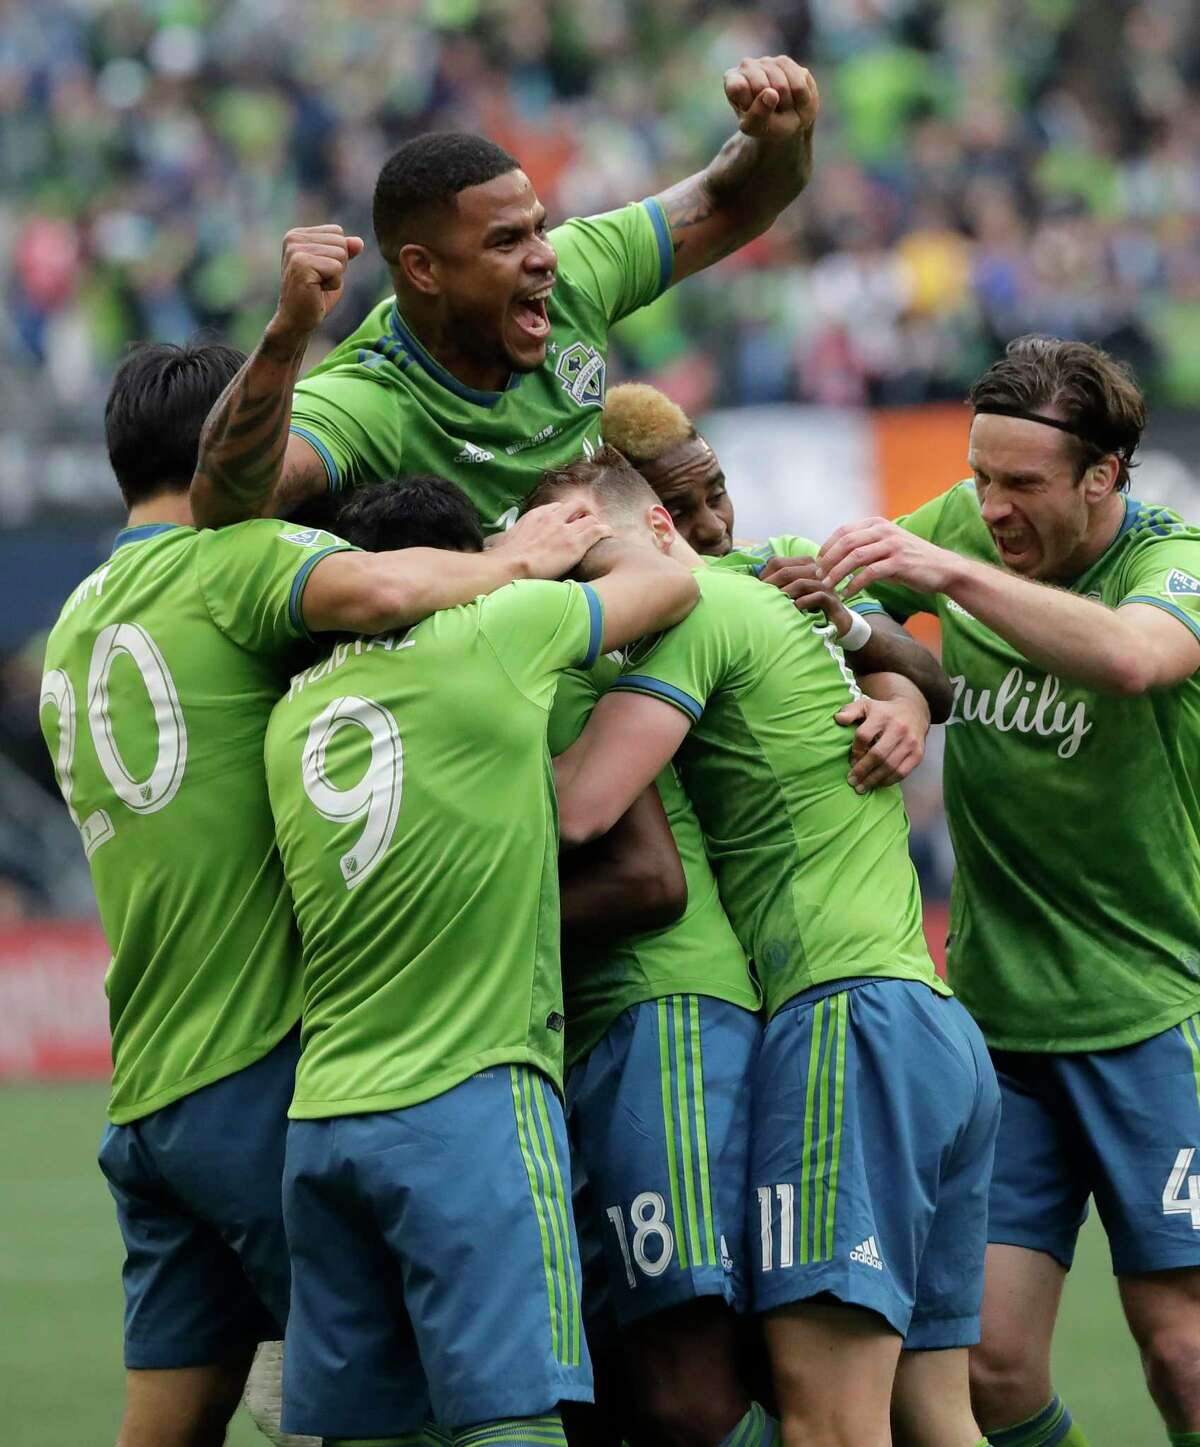 Seattle Sounders' Roman Torres, top, celebrates after teammate Kelvin Leerdam scored against the Toronto FC, Sunday, Nov. 10, 2019, during the second half of the MLS Cup championship soccer match in Seattle. (AP Photo/Ted S. Warren)